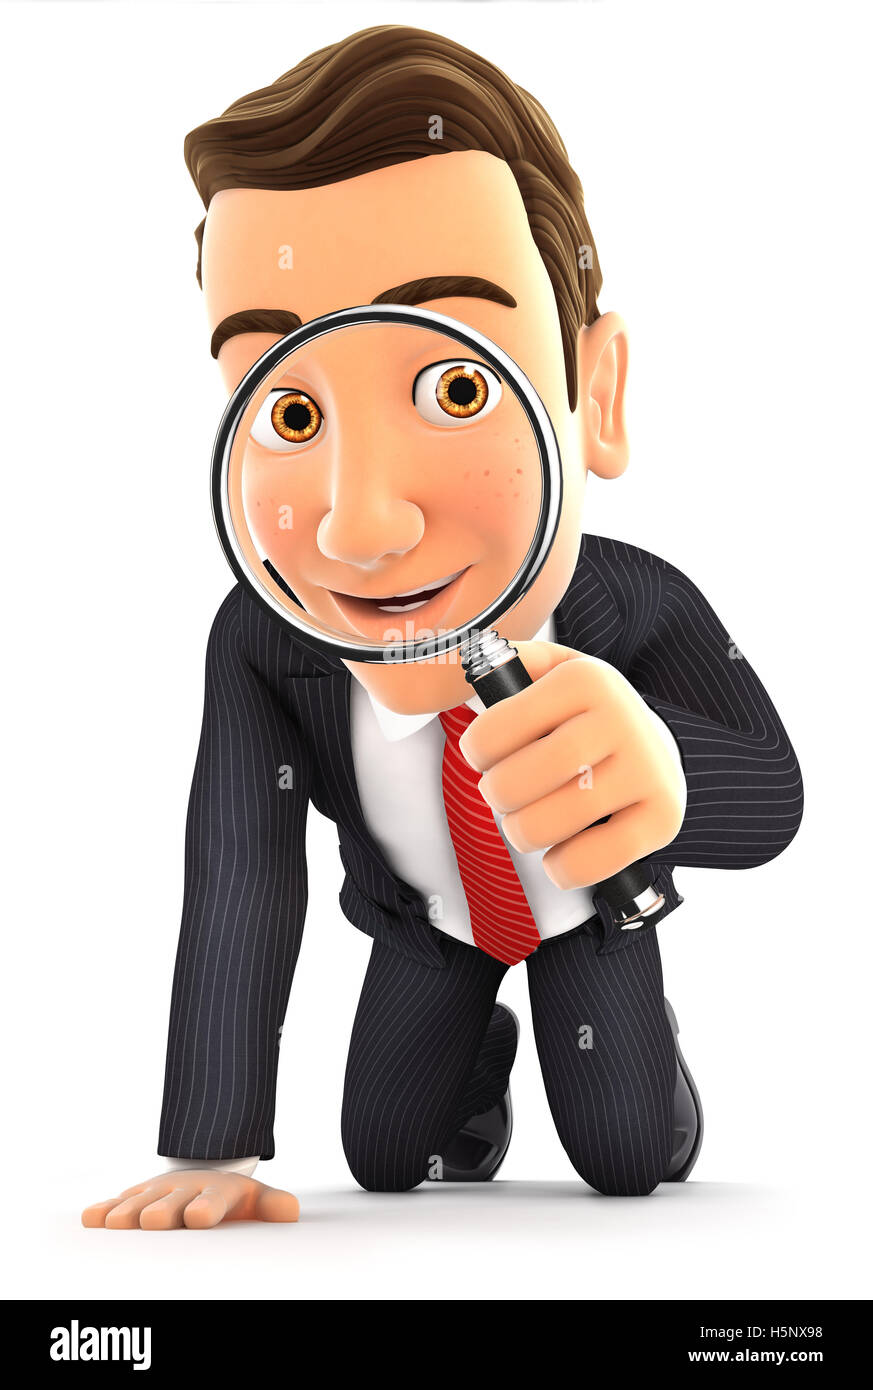 3d businessman looking through a magnifying glass, illustration with isolated white background Stock Photo